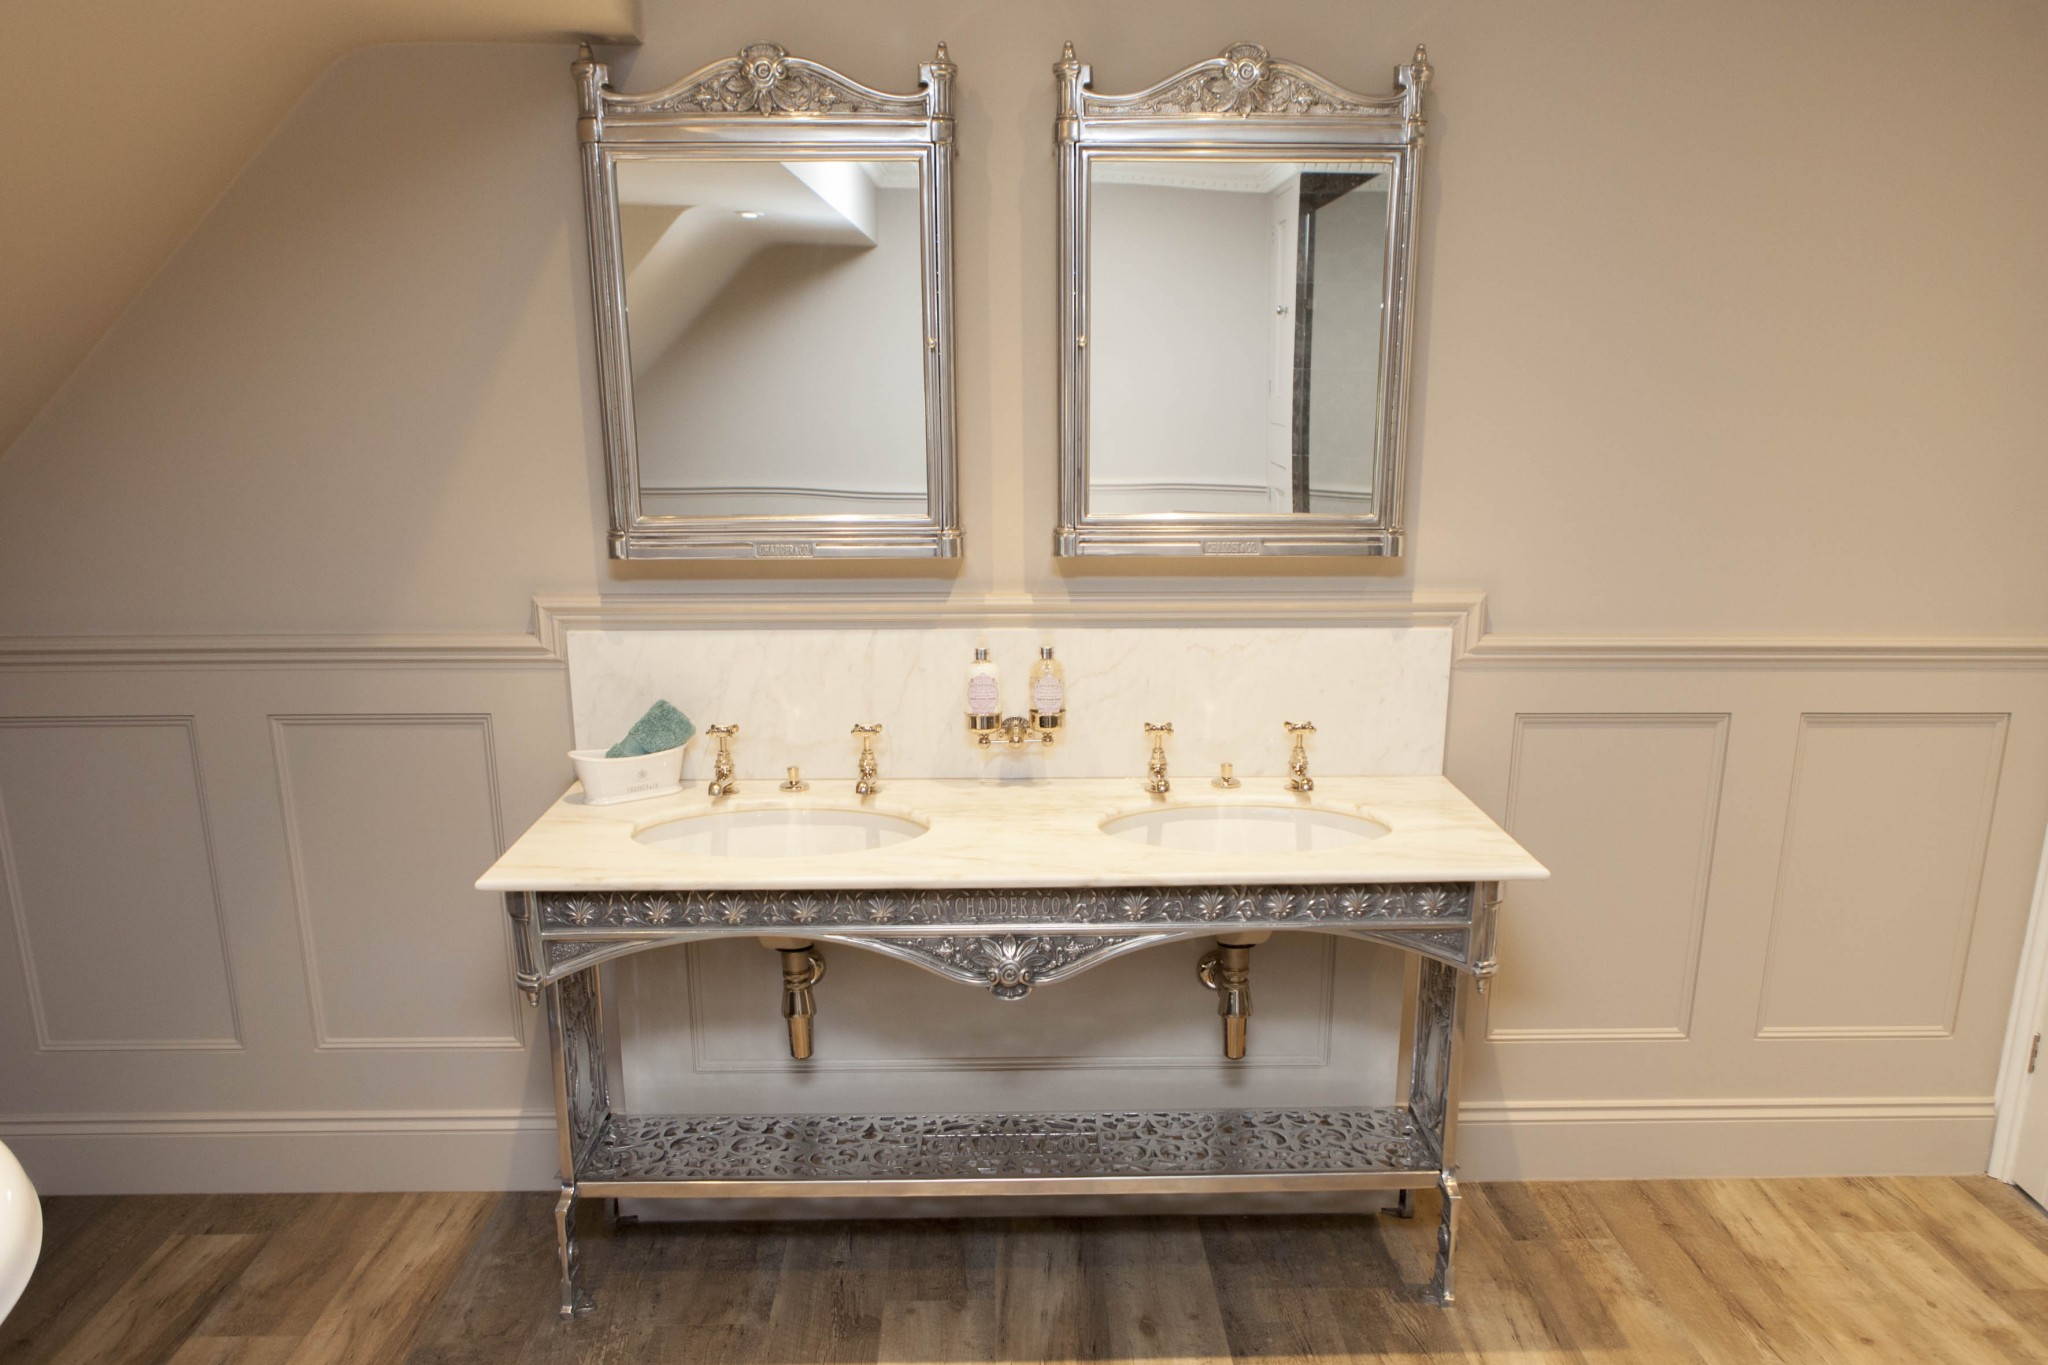 Chadder Coronation double basin unit with marble top and Nickel fittings. Chadder Blenheim surface mounted cabinets above.